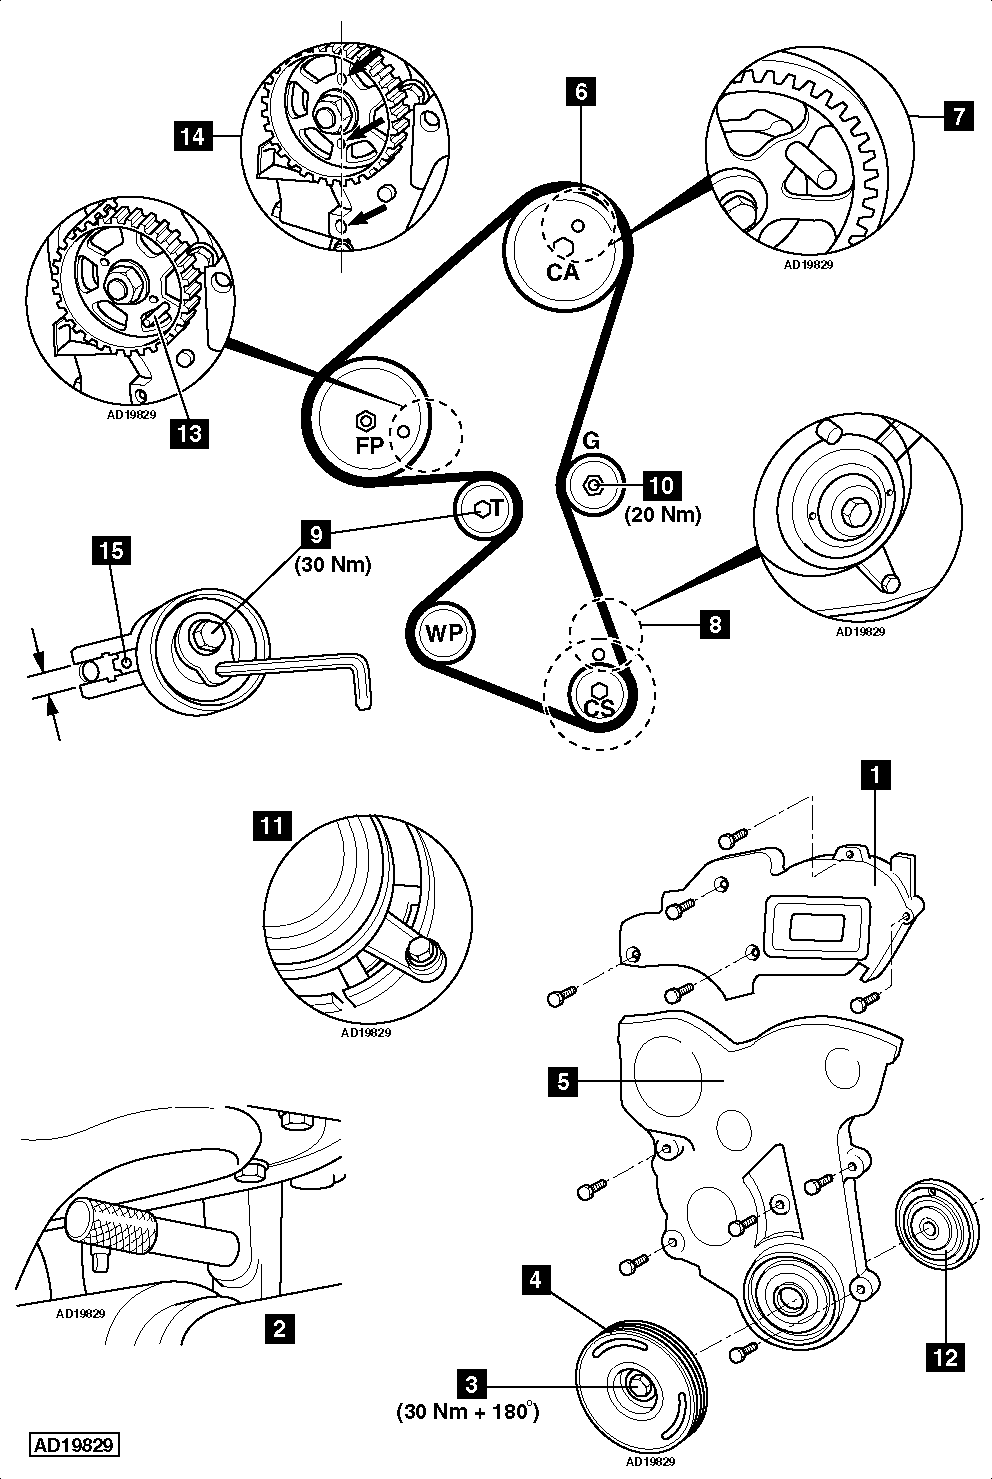 How To Replace Timing Belt On Ford Fiesta 1 6 Tdci 2009 in addition 3 0l Ohv Engine Diagram moreover Serpentine Belt Diagram 2001 Ford Focus 4 Cylinder 20 Liter Engine With Dohc Engine Without Air Conditioner 03380 moreover 2004 further I Need The Drive Belt Routing For A 1995 Ford Mustang 5 0 8 Cyl Within 1995 Ford F150 Serpentine Belt Diagram. on dodge serpentine belt diagram